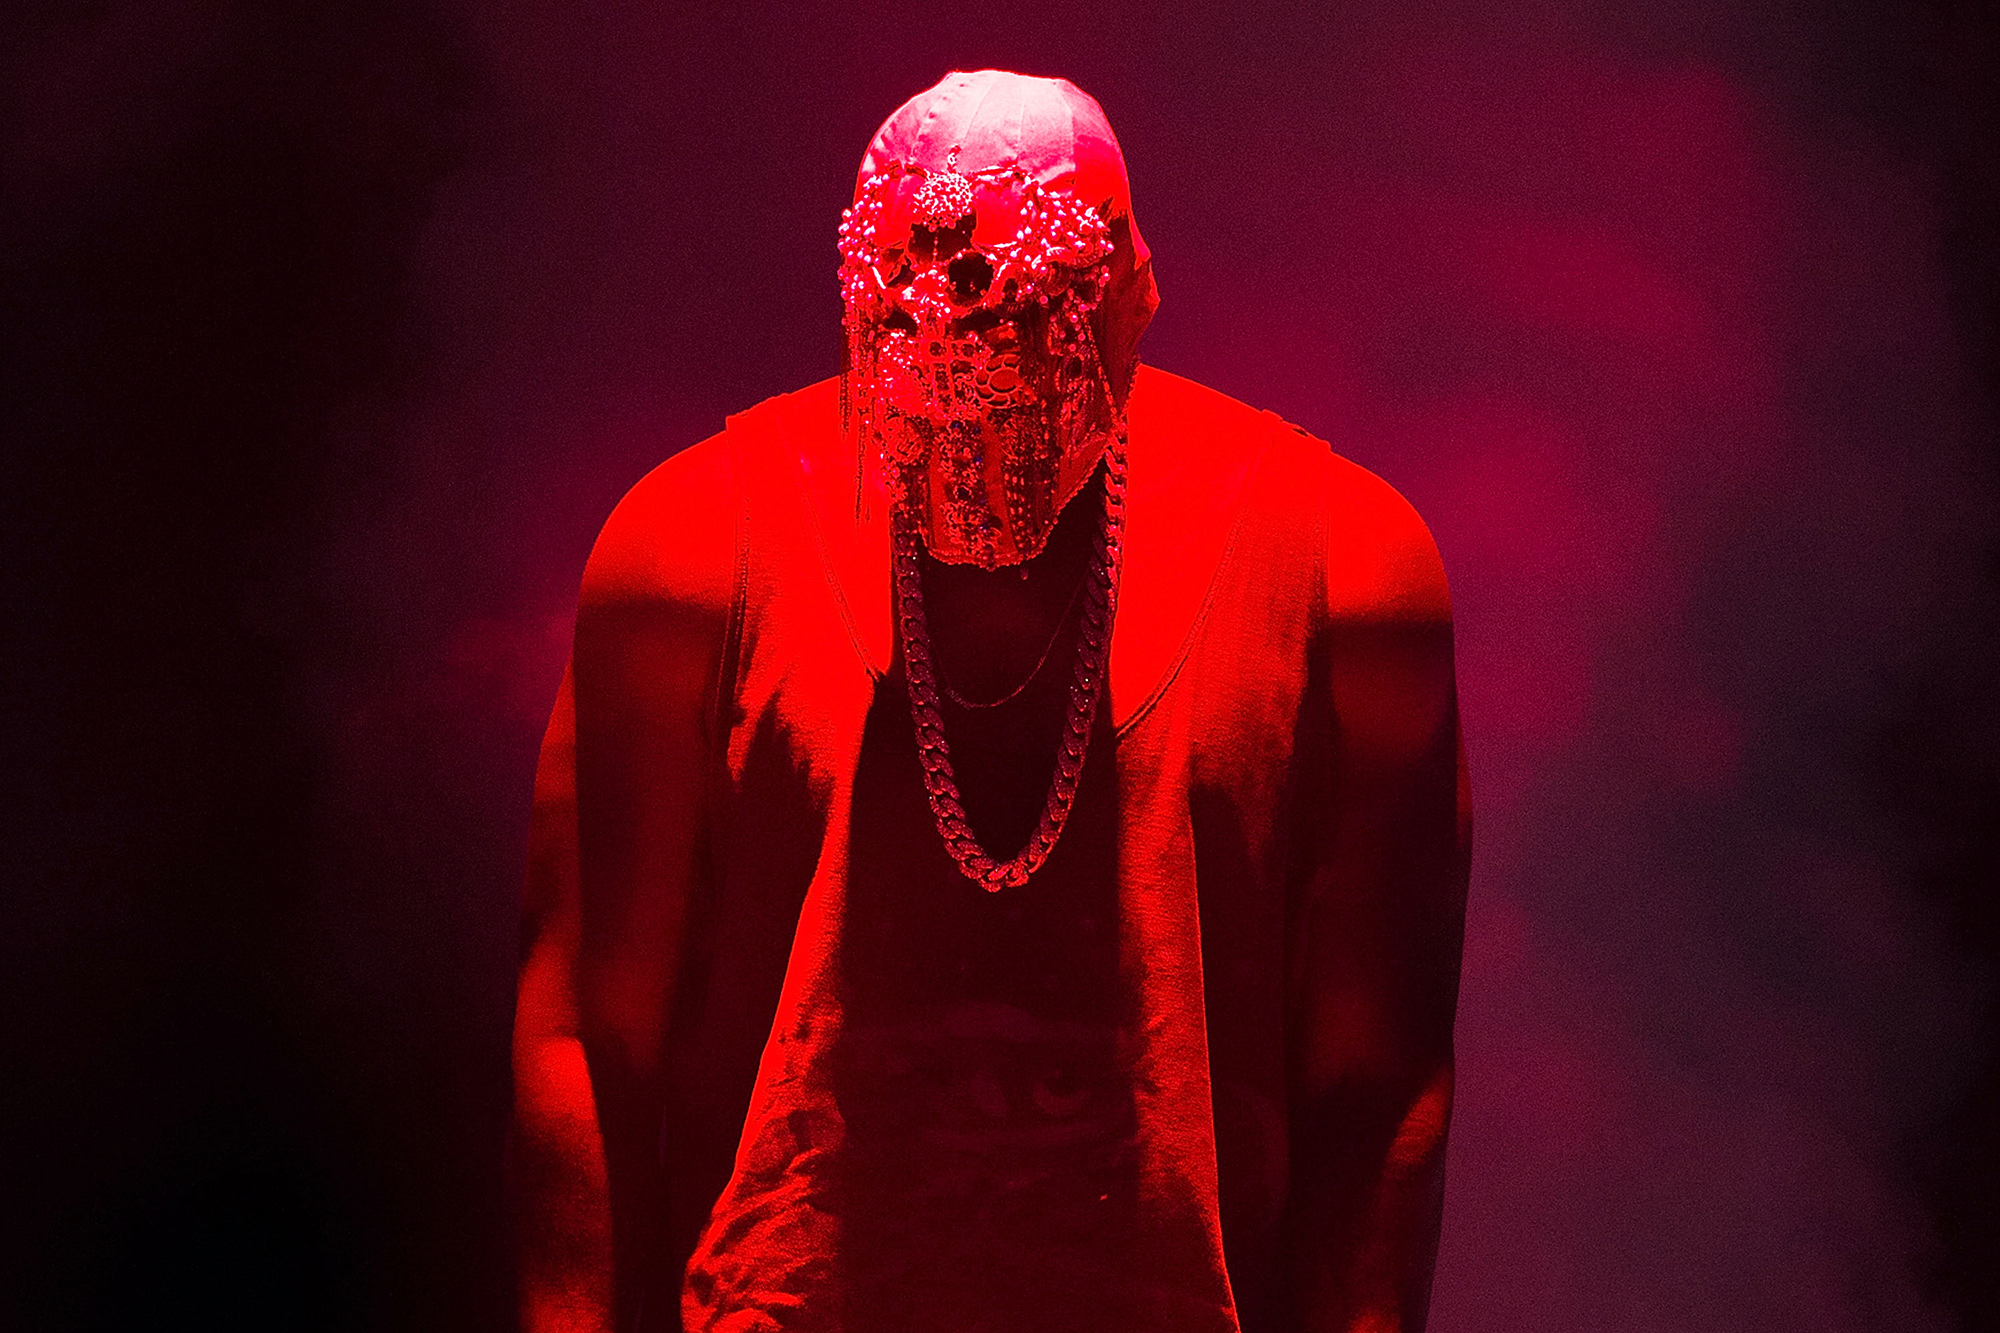 Kanye West performs during the Yeezus Tour in Sydney, Australia, on Sept. 12, 2014.